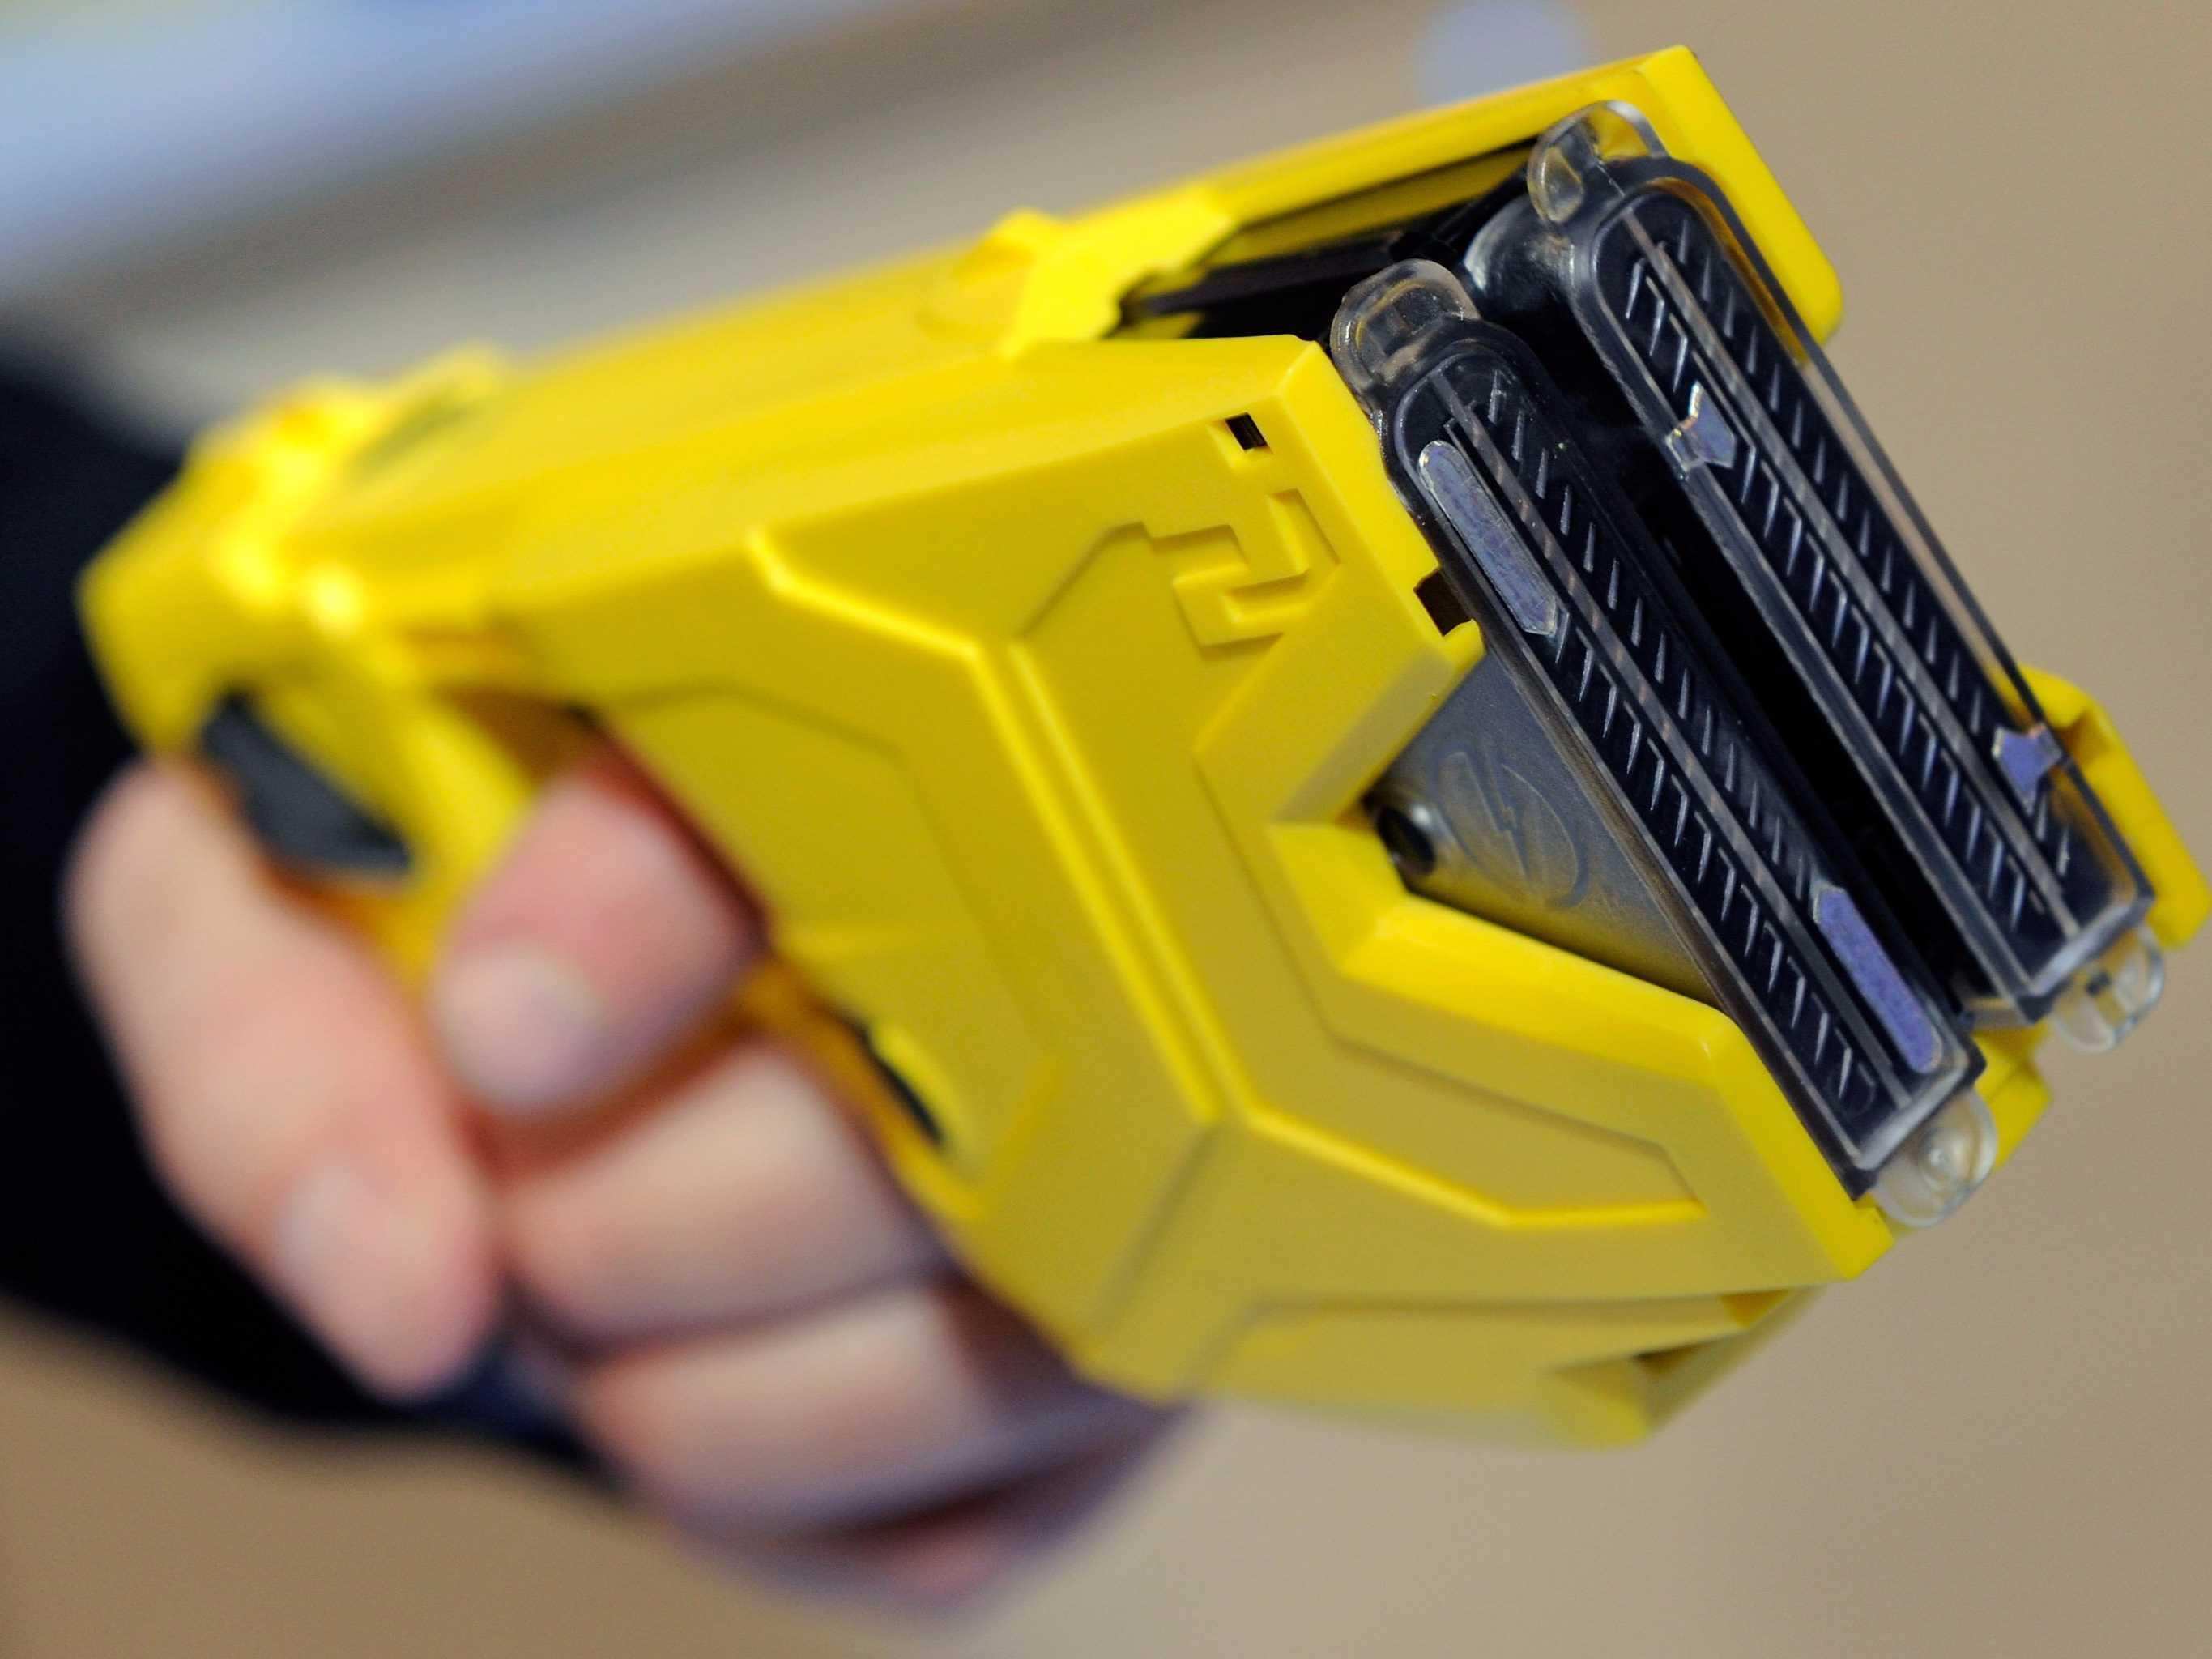 Taser International shares are falling after a new documentary questions how safe tasers really are